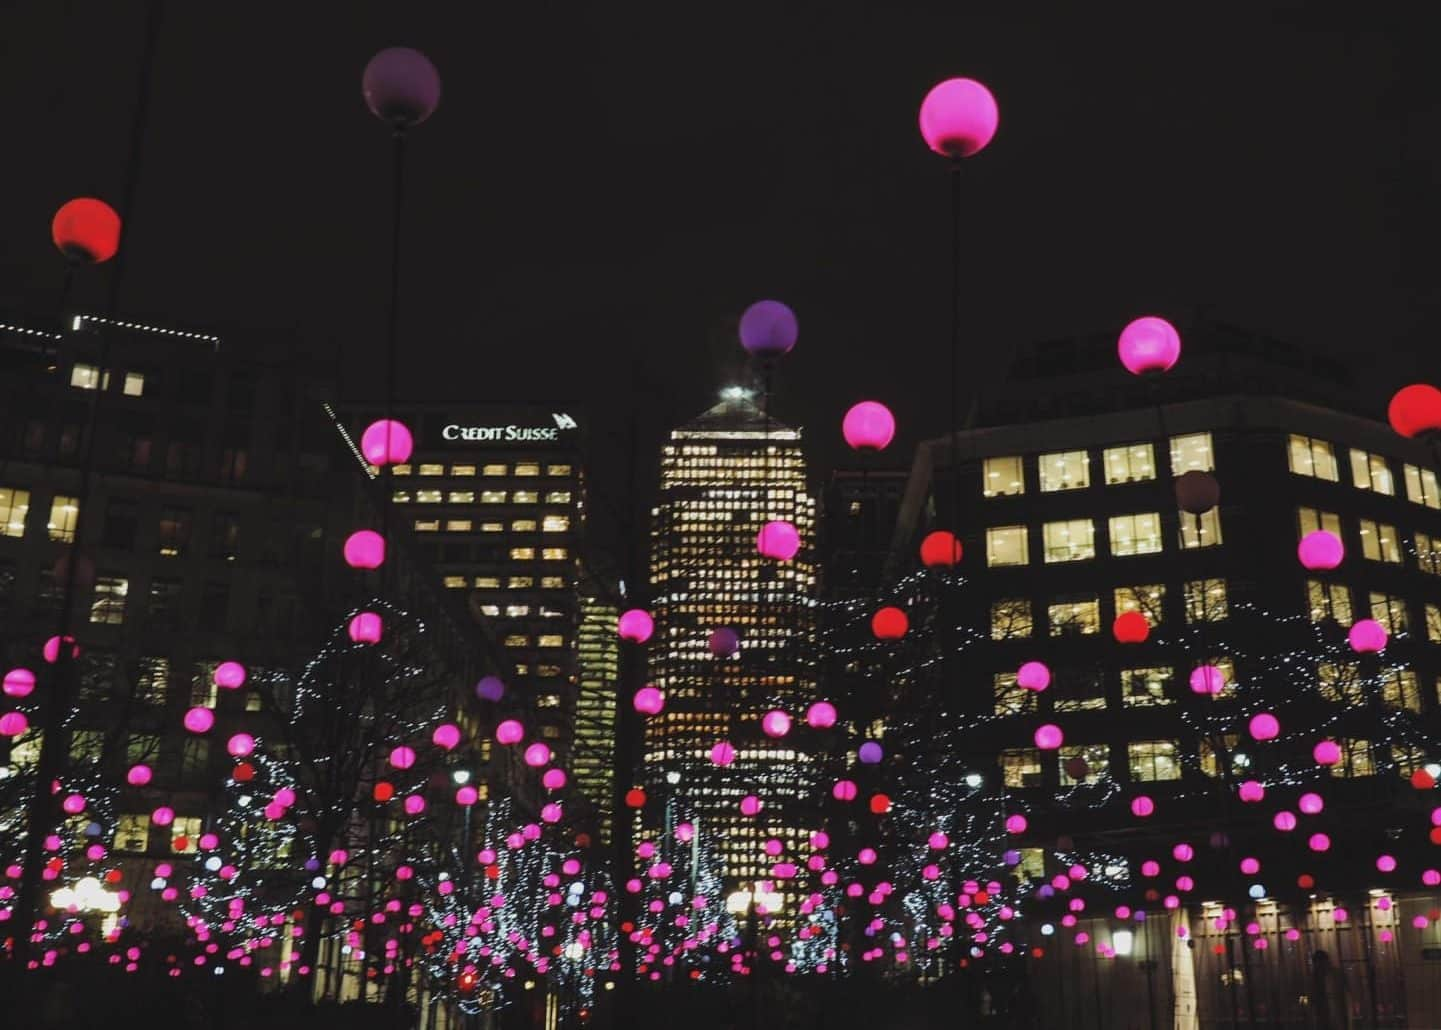 Canary Wharf Winter Lights Festival 2017